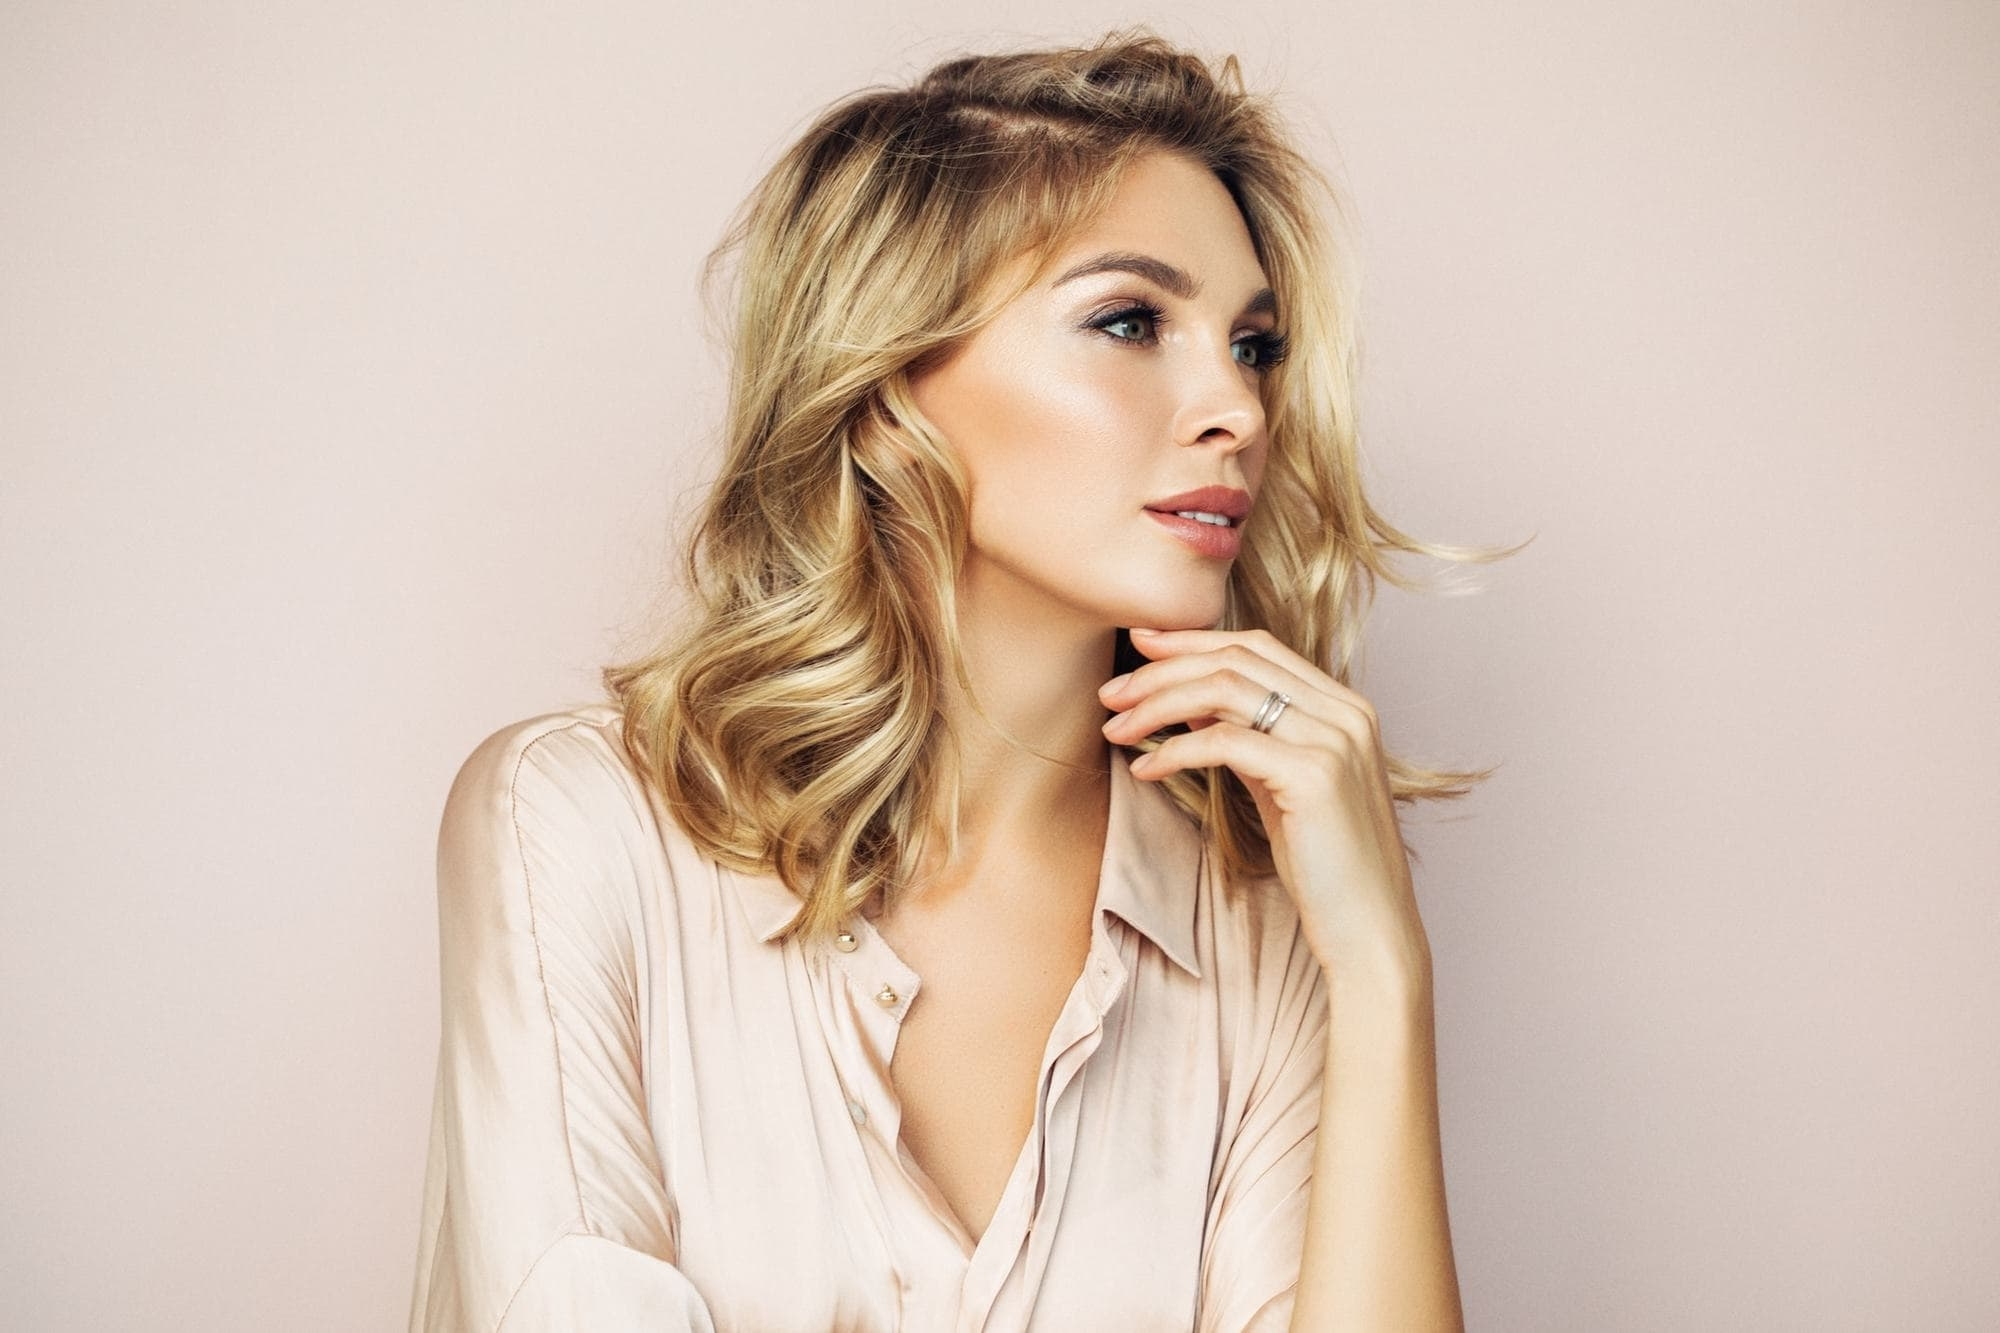 Trendy Voluminous And Carefree Loose Look Blonde Hairstyles For Messy Hairstyles: 10 Perfectly Imperfect Hairstyles (View 17 of 20)